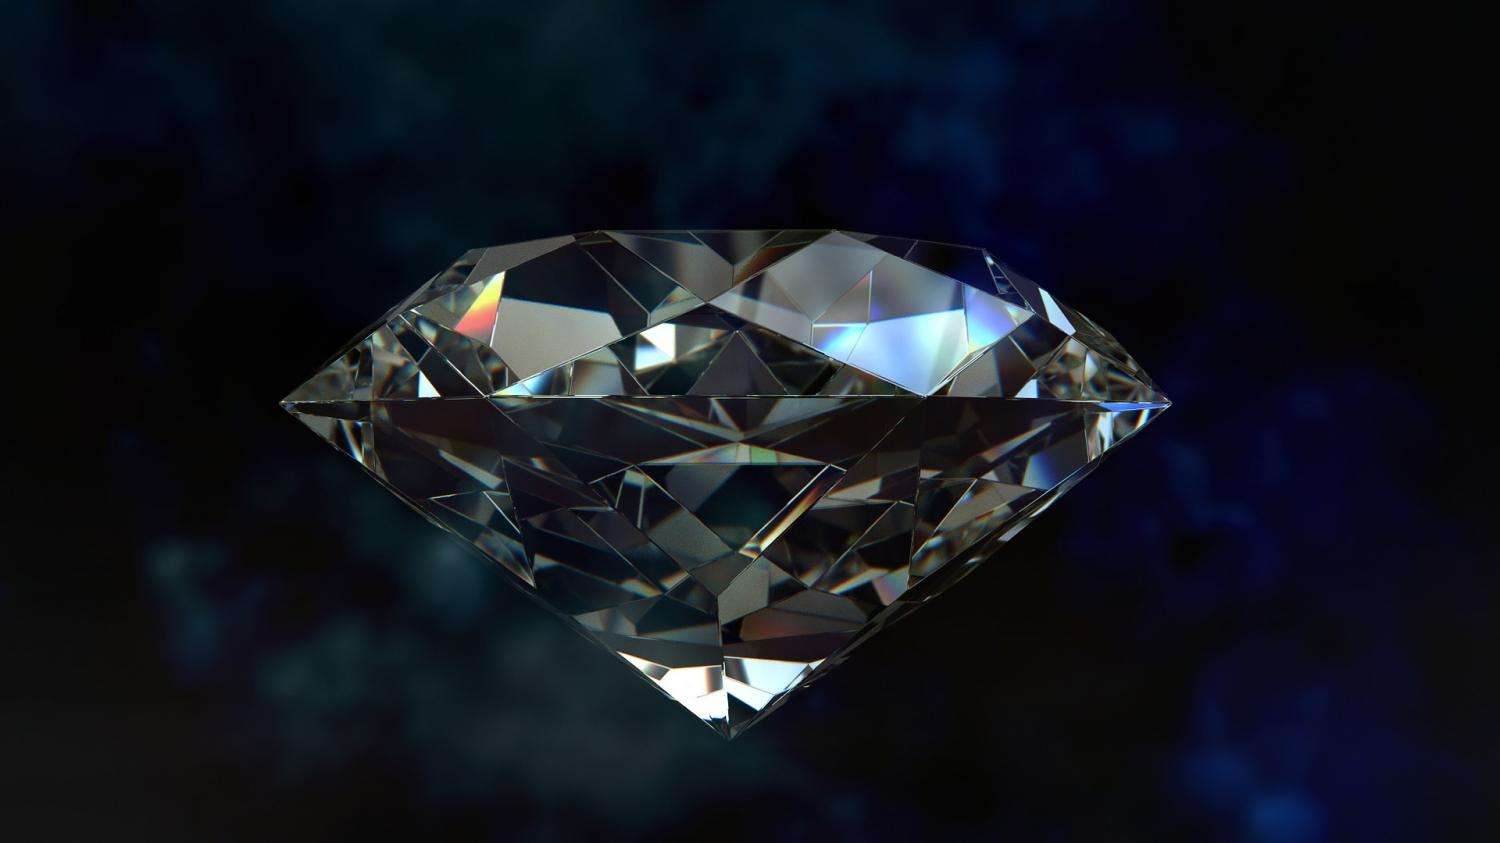 Superdeep diamond discovery sheds new light on inner workings of Earth